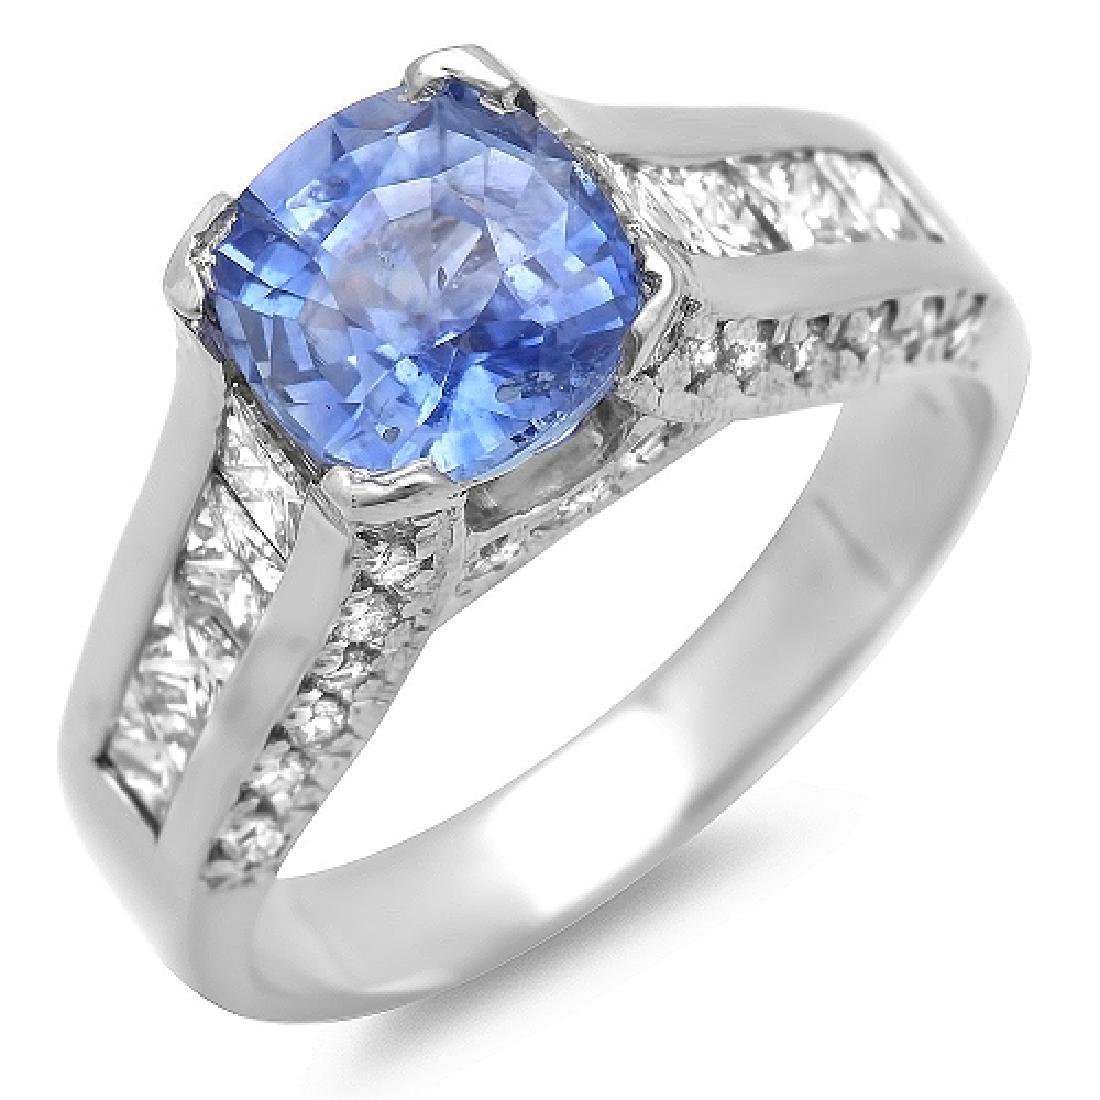 3.88 Carat Natural Sapphire 18K Solid White Gold